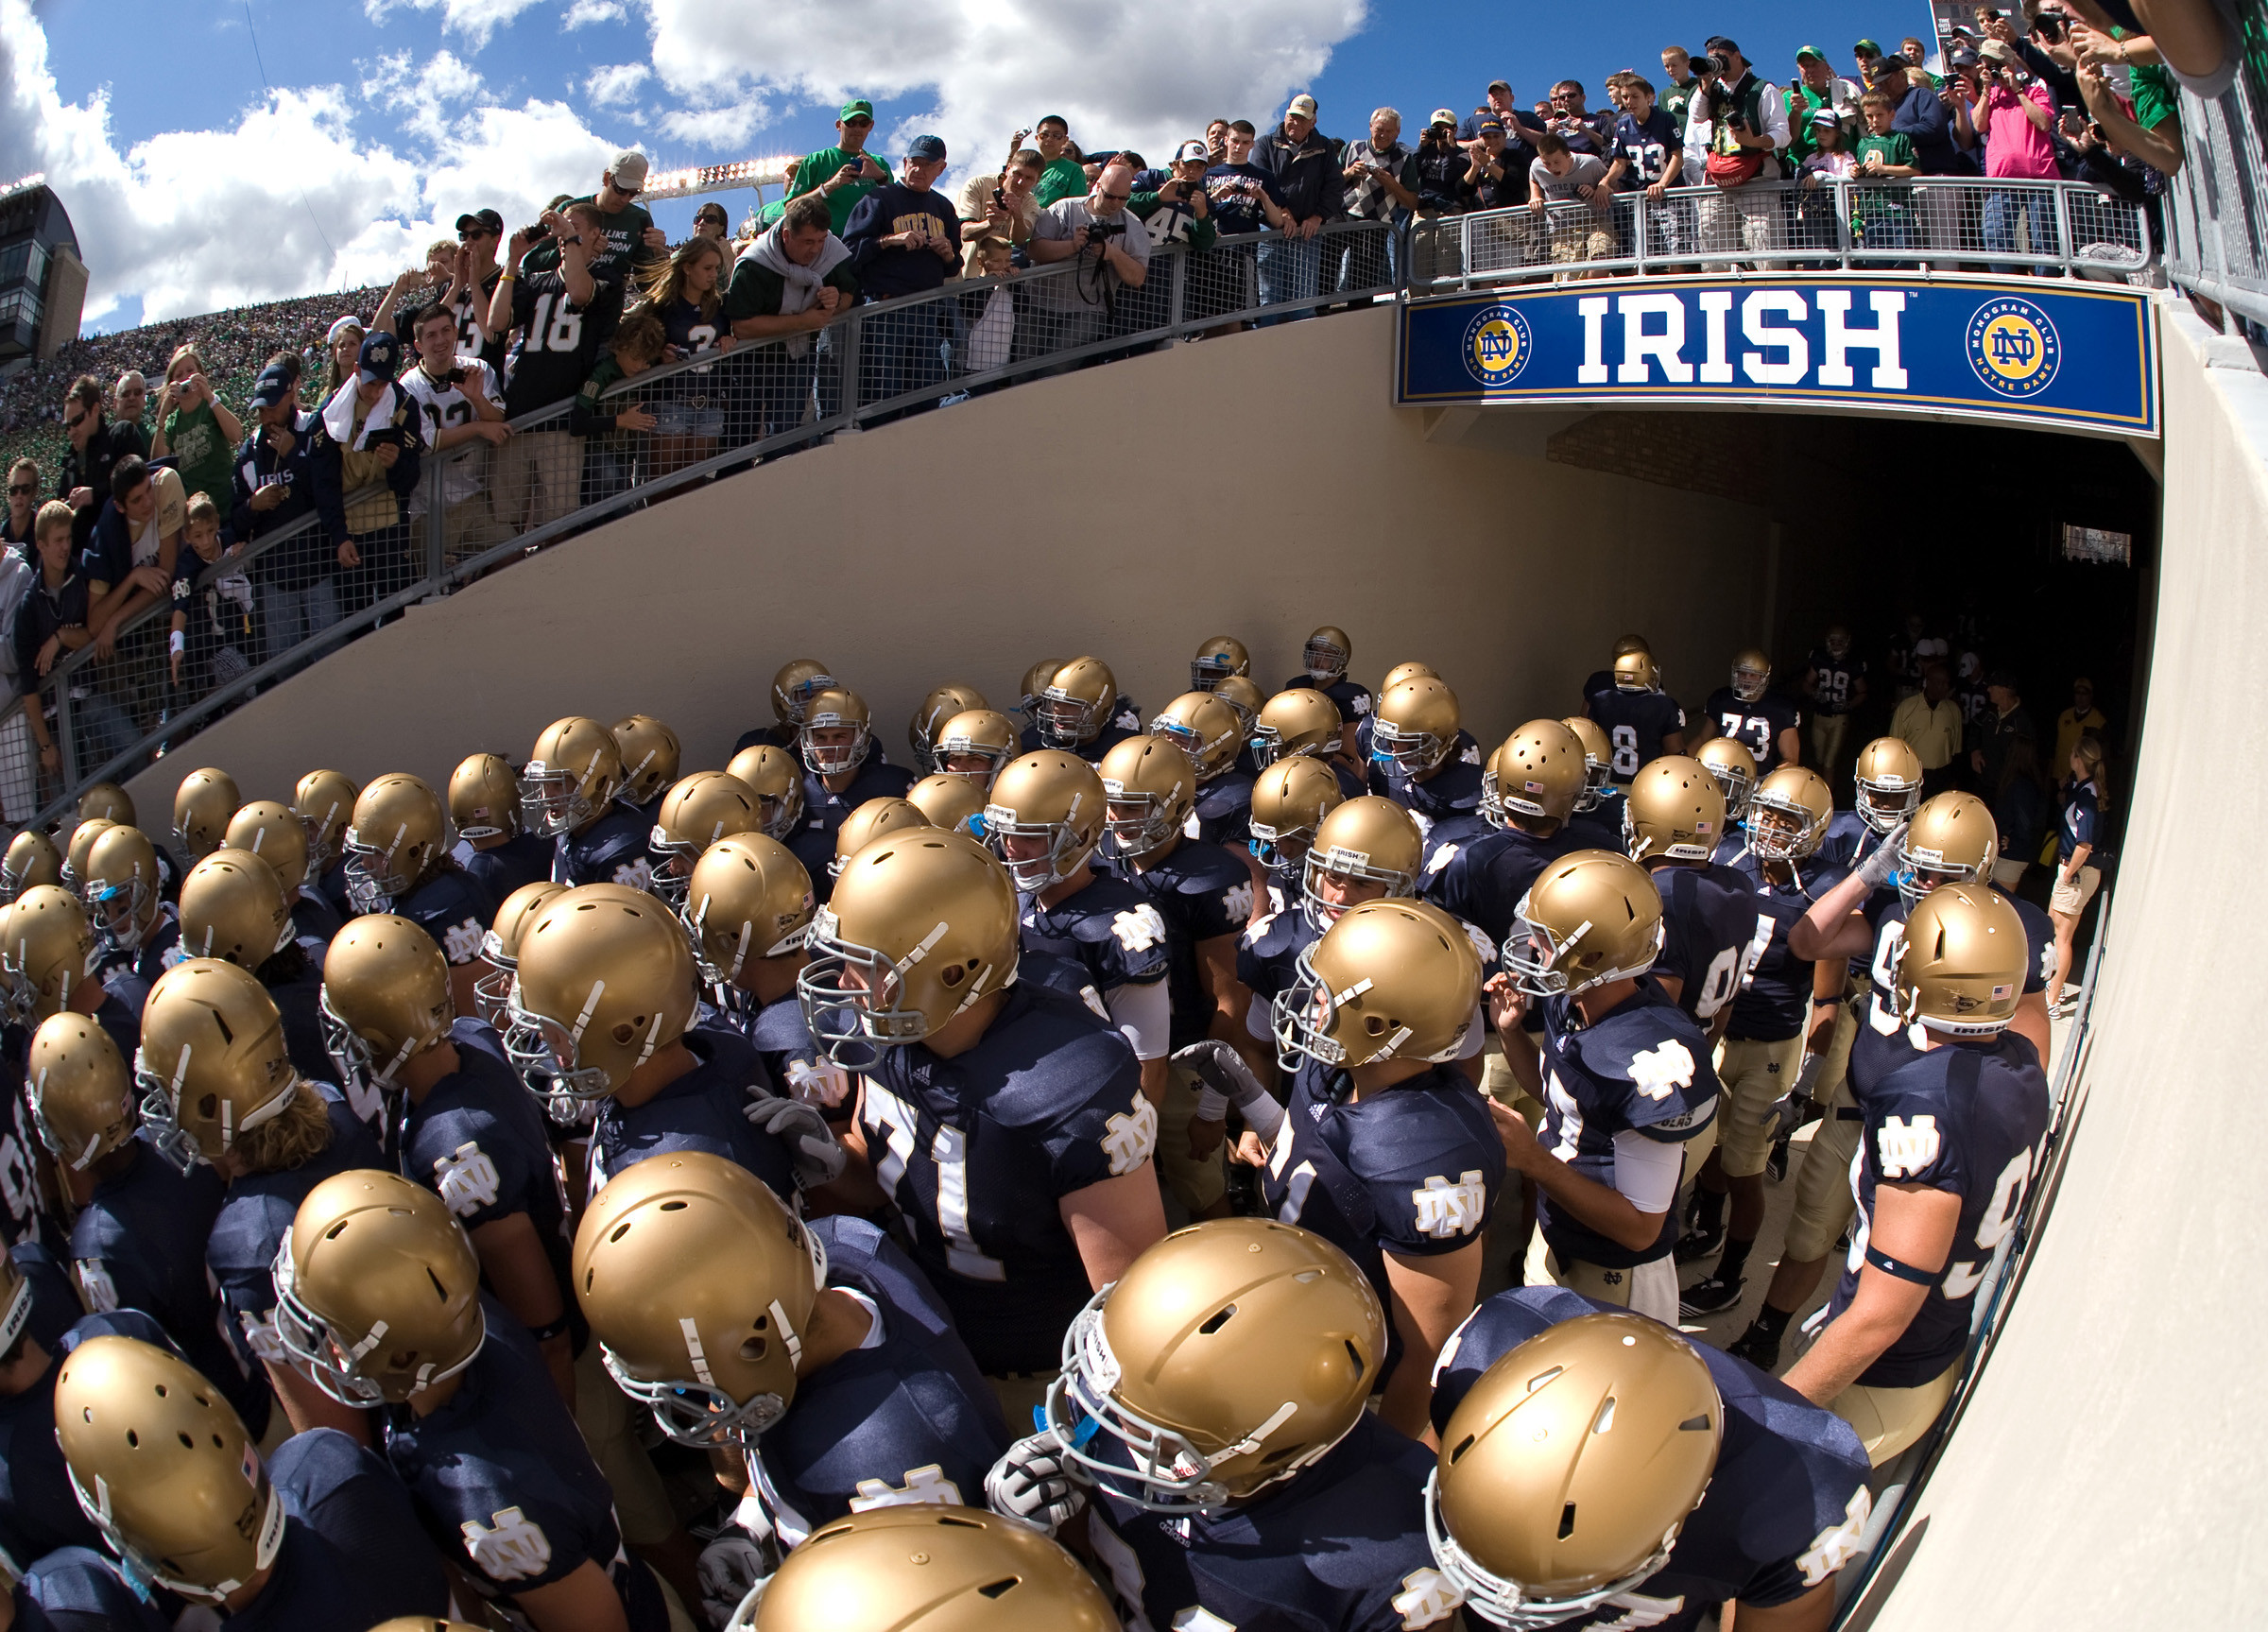 Notre dame wallpaper 70 images - Notre dame football wallpaper ...